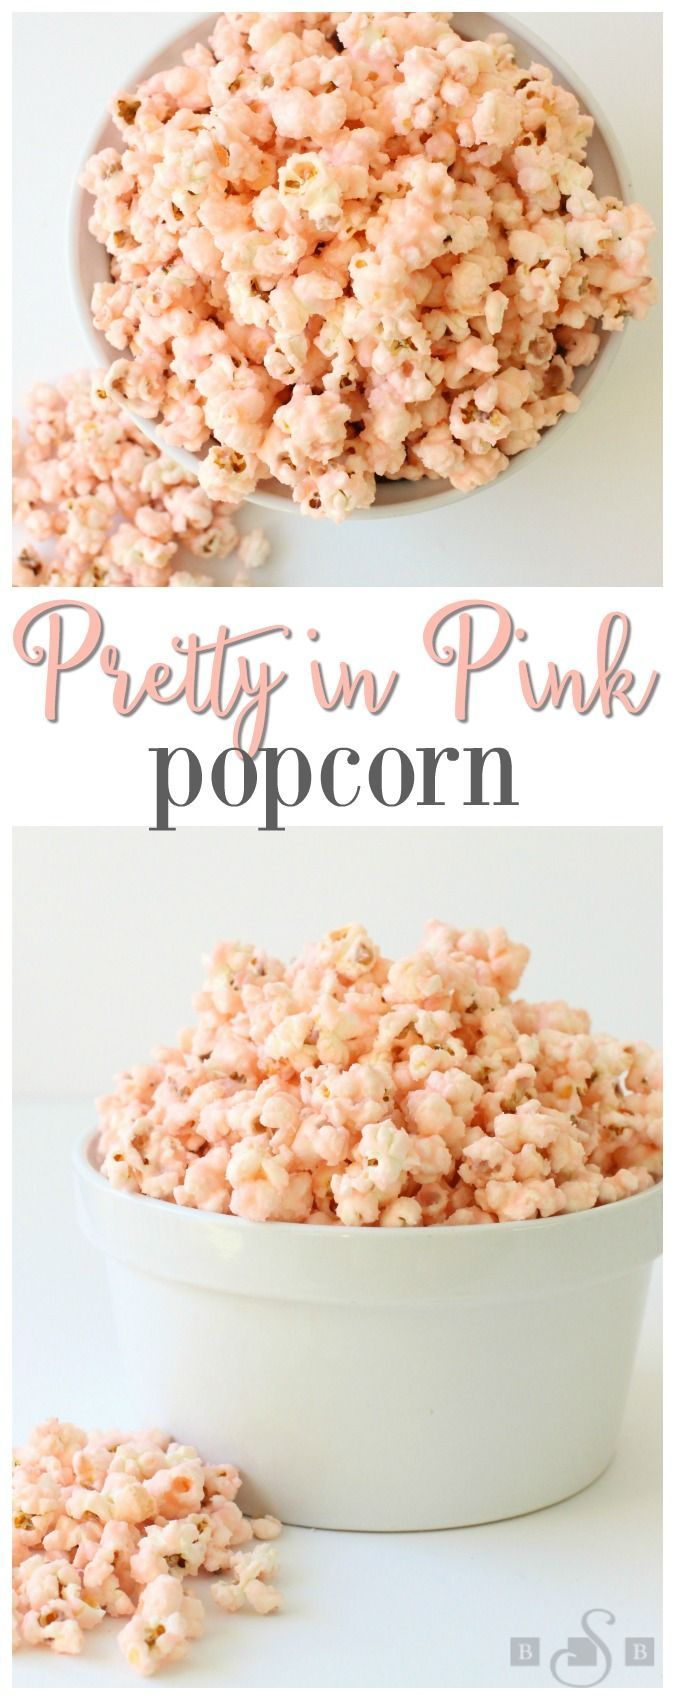 Pretty In Pink Popcorn - Butter With A Side of Bread (Make it with organic ingredients, and skip the food coloring.)